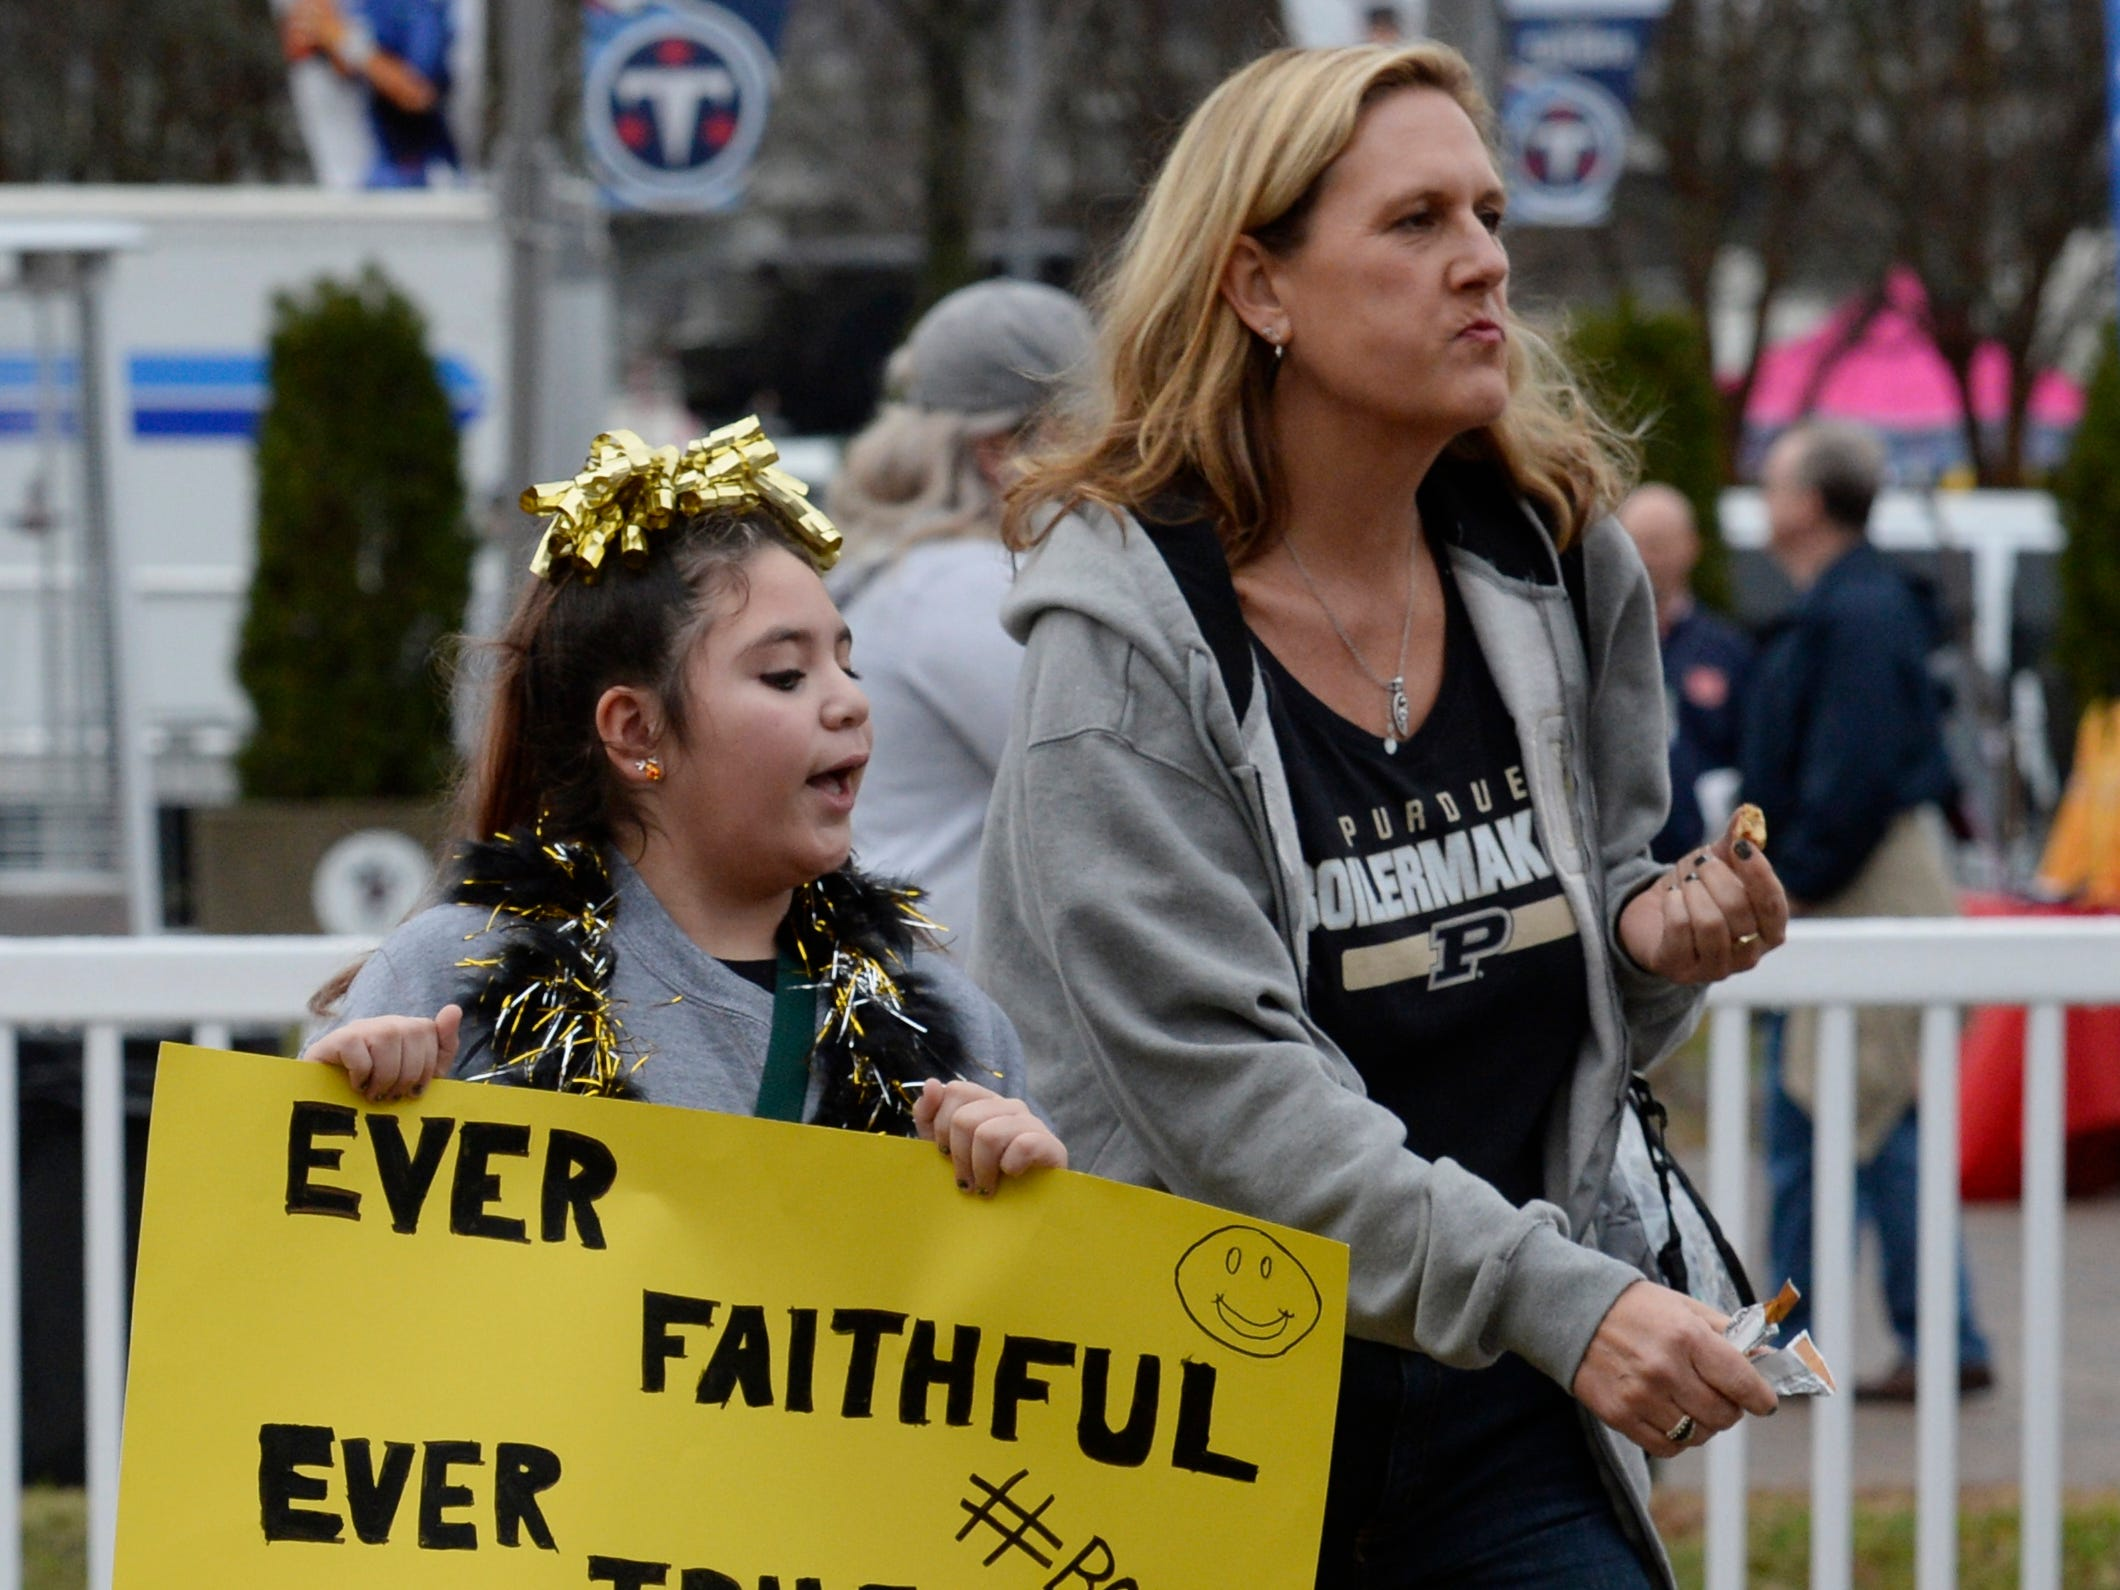 Elaina Hamilton carries a sign while walking with her aunt, Laurie Dreyling, before the start of the Music City Bowl NCAA college football game Friday, Dec. 28, 2018, at Nissan Stadium in Nashville, Tenn.